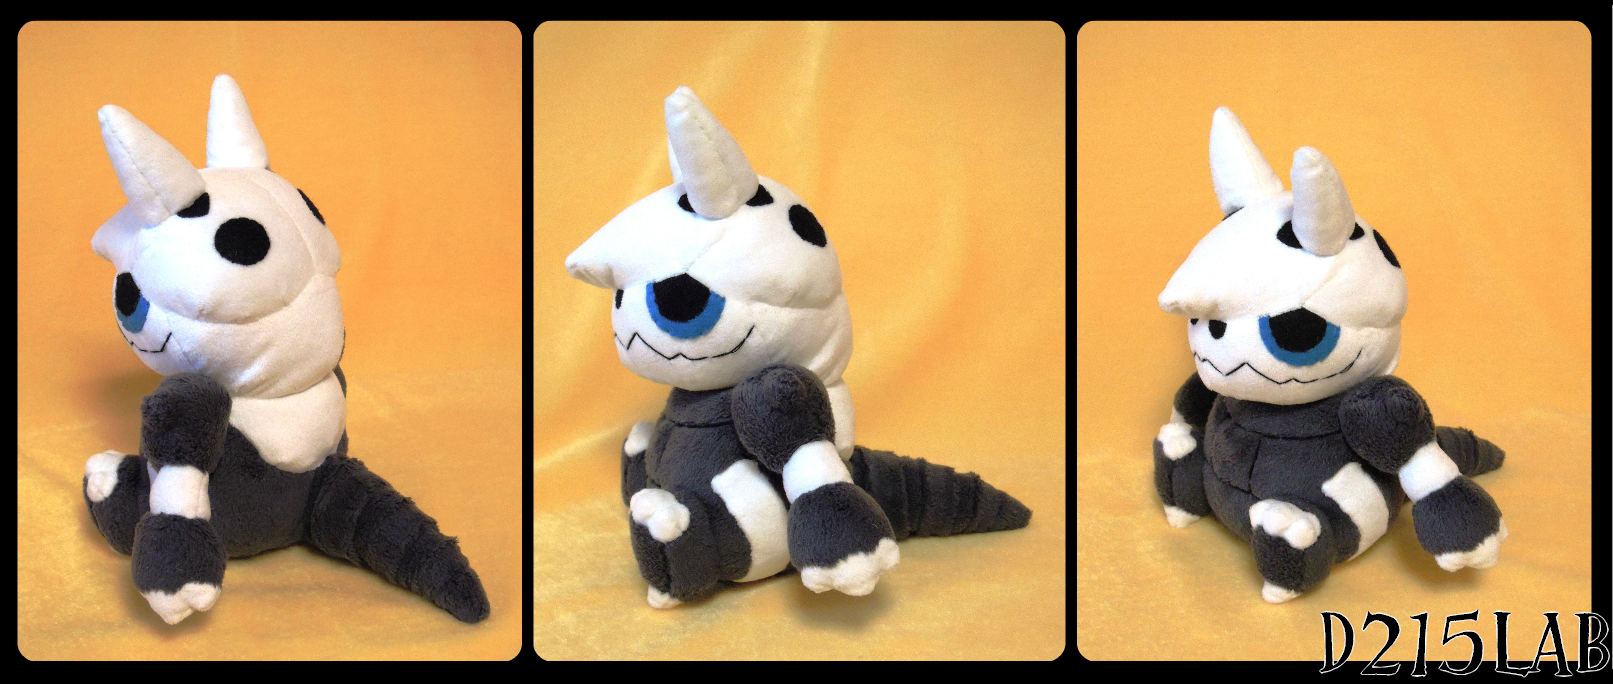 Arggron plush by d215lab